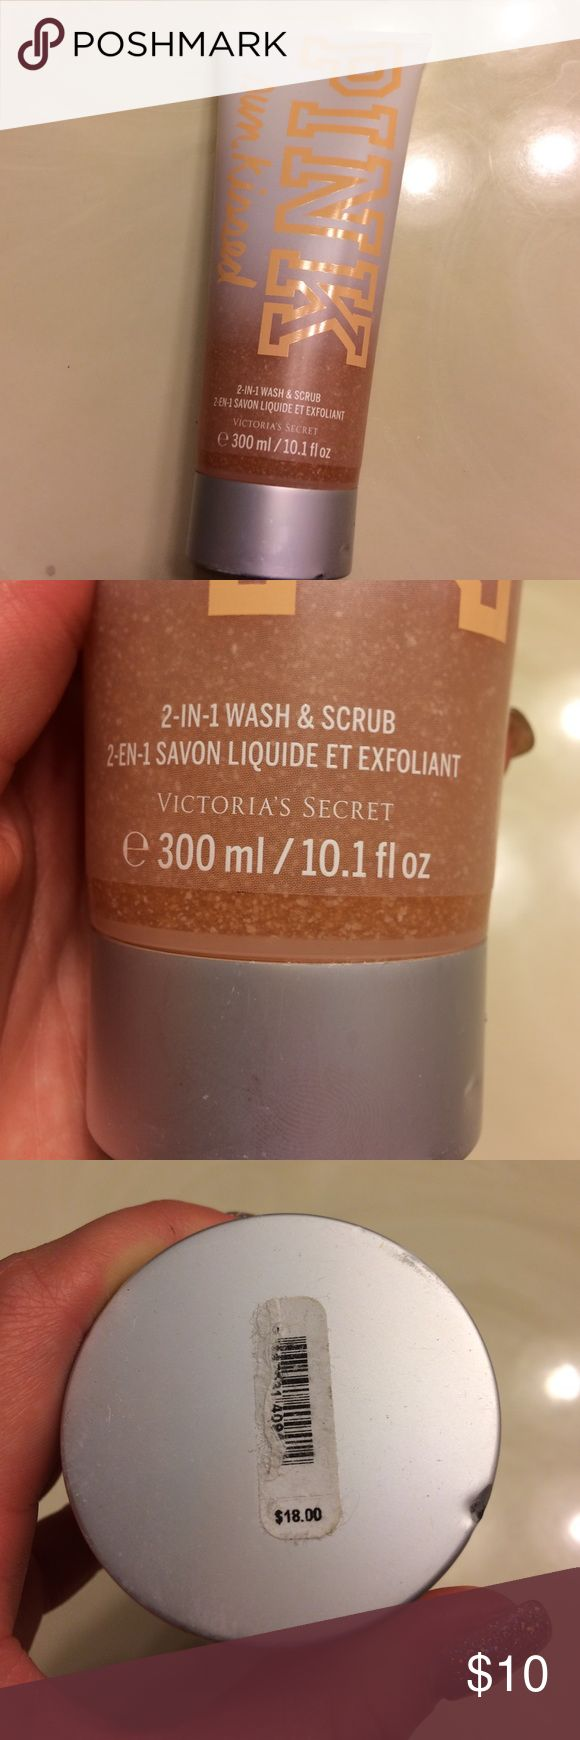 Pink Victoria's Secret sun kissed body scrub Got this as a gift and I've never used it. 10.1 oz of lucious body scrub that will leave you smelling fresh and clean. PINK Victoria's Secret Other